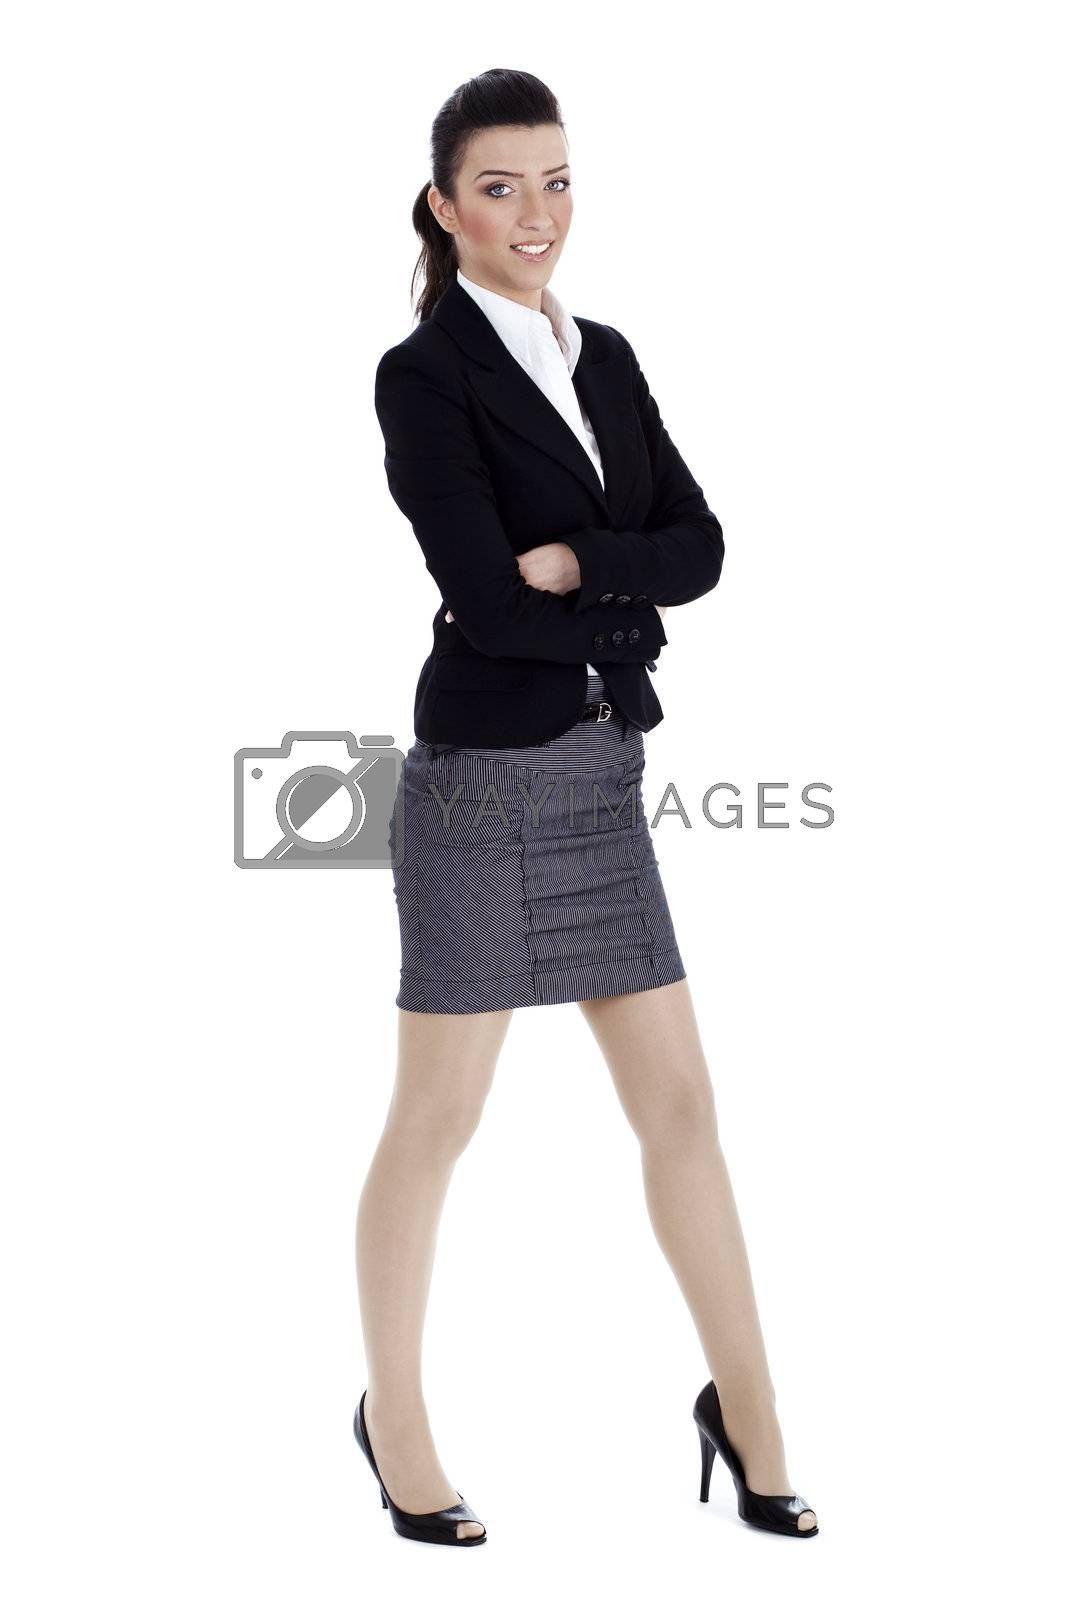 Royalty free image of Young business woman in professional costume by get4net